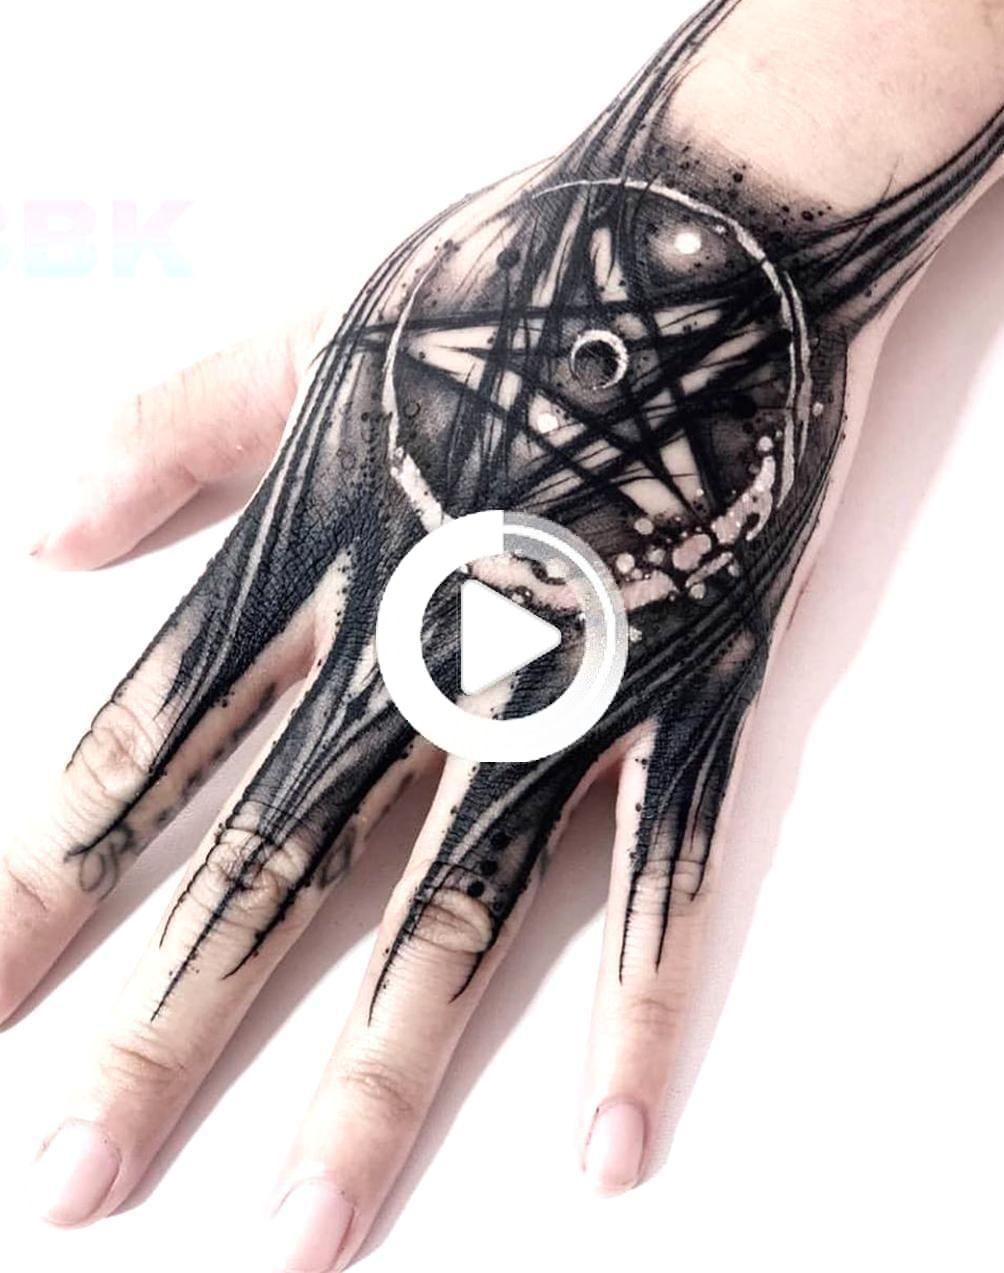 Pin on Hand Tattoos in 2020 | Hand tattoos, Small hand tattoos, Hand t